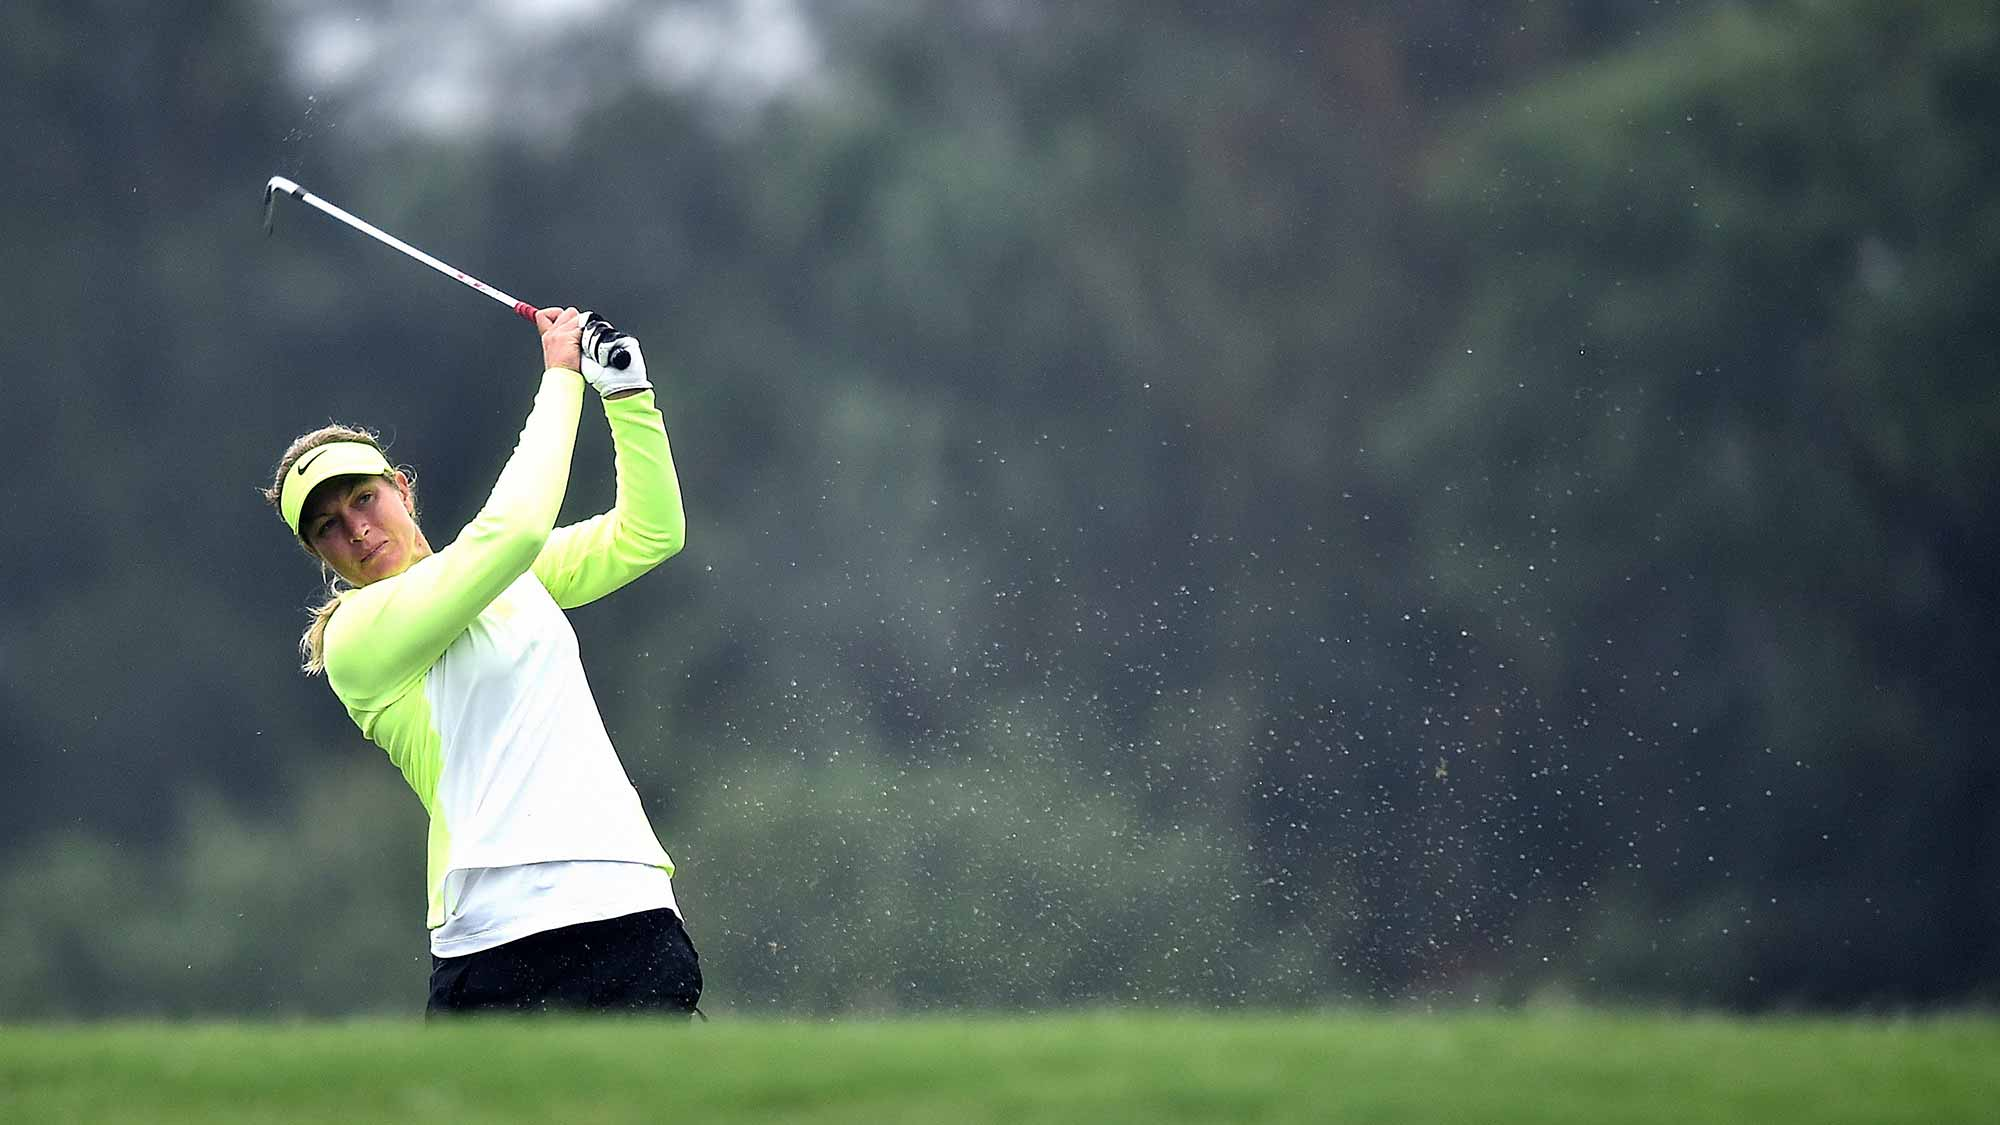 Suzann Pettersen of Norway plays a shot during day two of 2015 Fubon LPGA Taiwan Championship at Miramar Golf Country Club